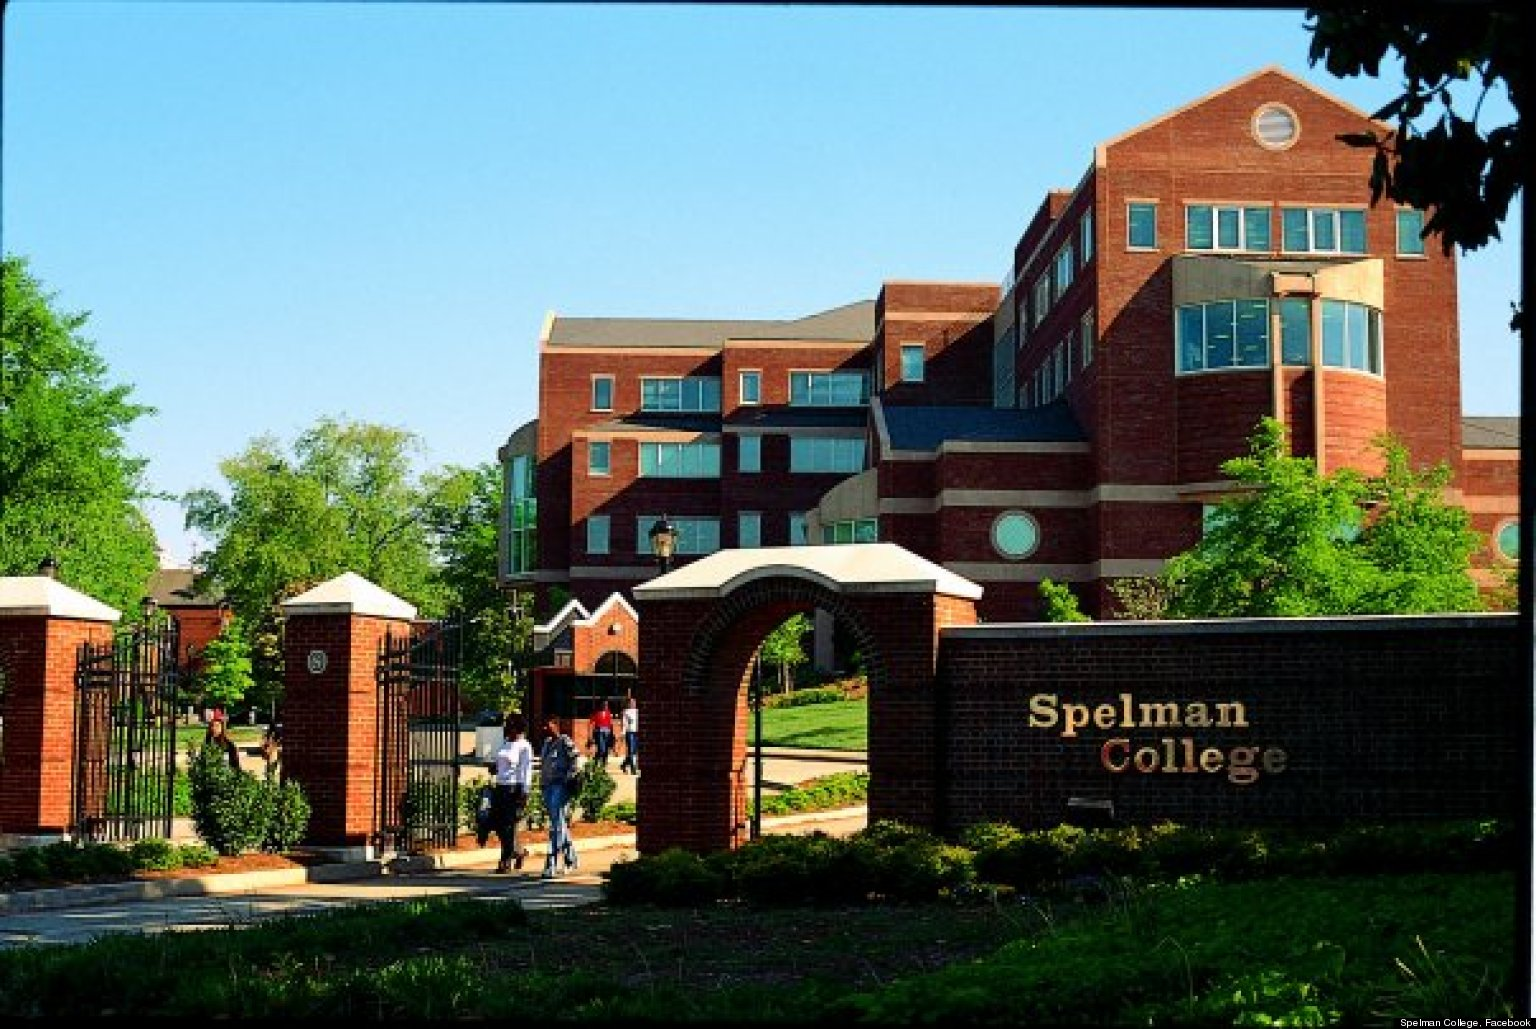 o-SPELMAN-COLLEGE-PROGRAM-facebook.jpg